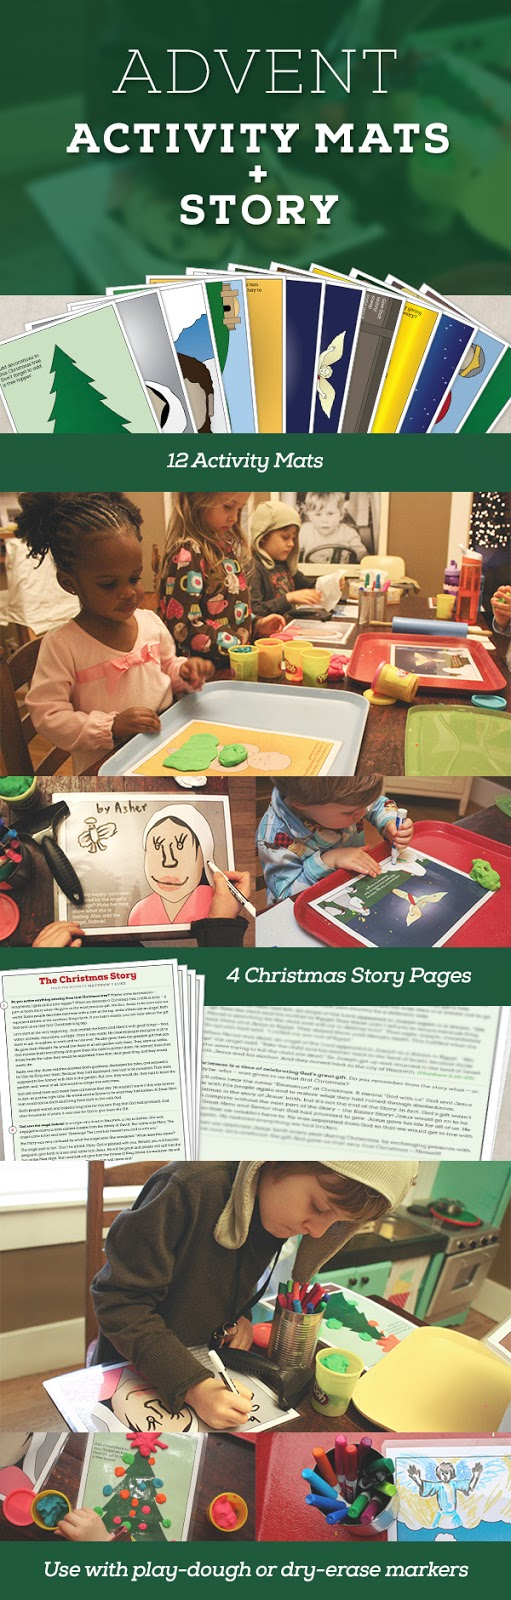 over the years weve tried various ways to engage our children during this season involving toddlers can be challenging through trial and much error - Christmas Story For Toddlers